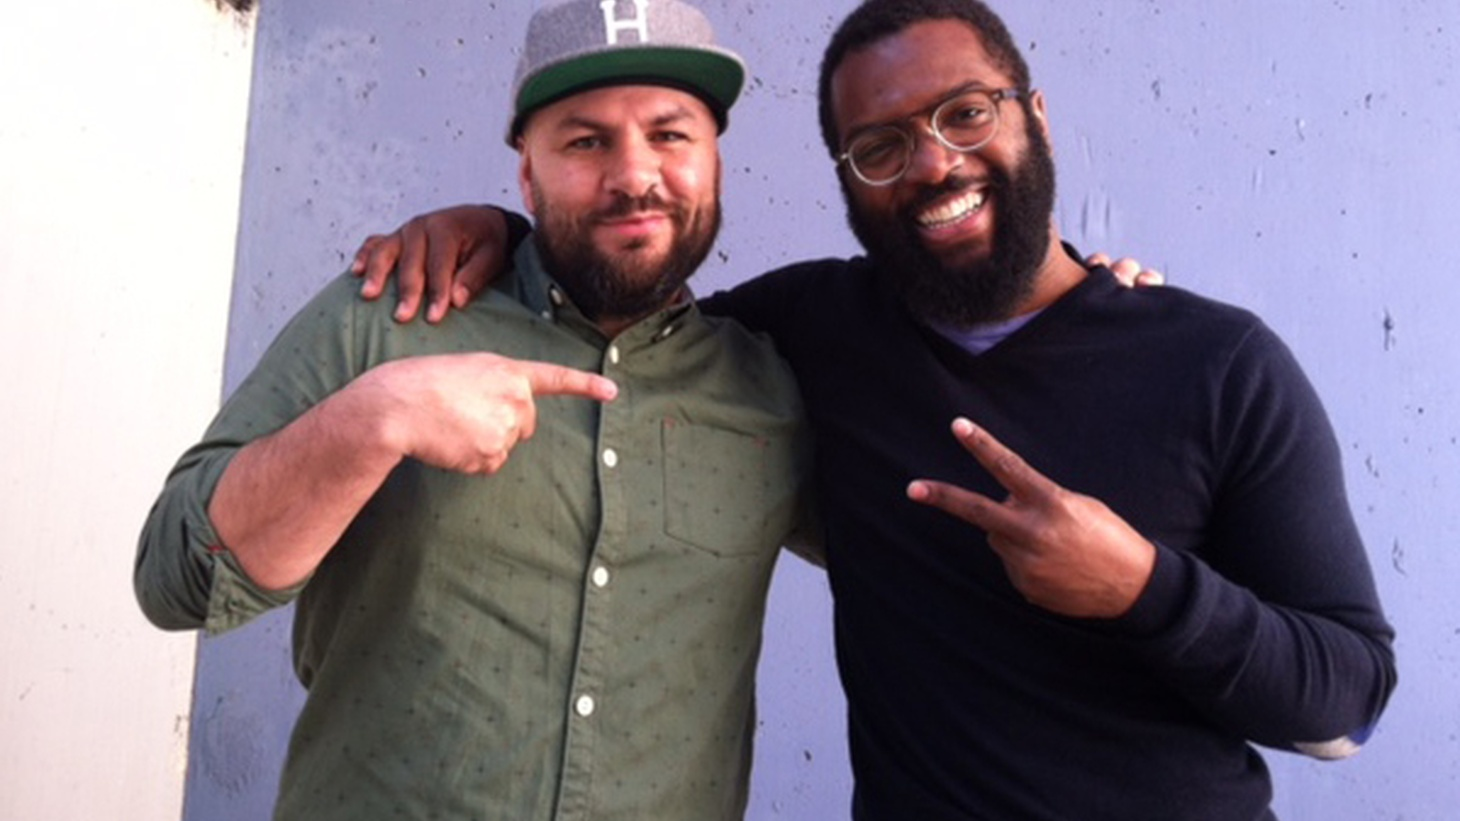 Baratunde Thurston is a comedian and bestselling author of the book How To Be Black. In his Guest DJ set, he tells us how Beethoven opened his ears, the Sarafina! soundtrack opened his mind and how his heart led him to Nirvana.